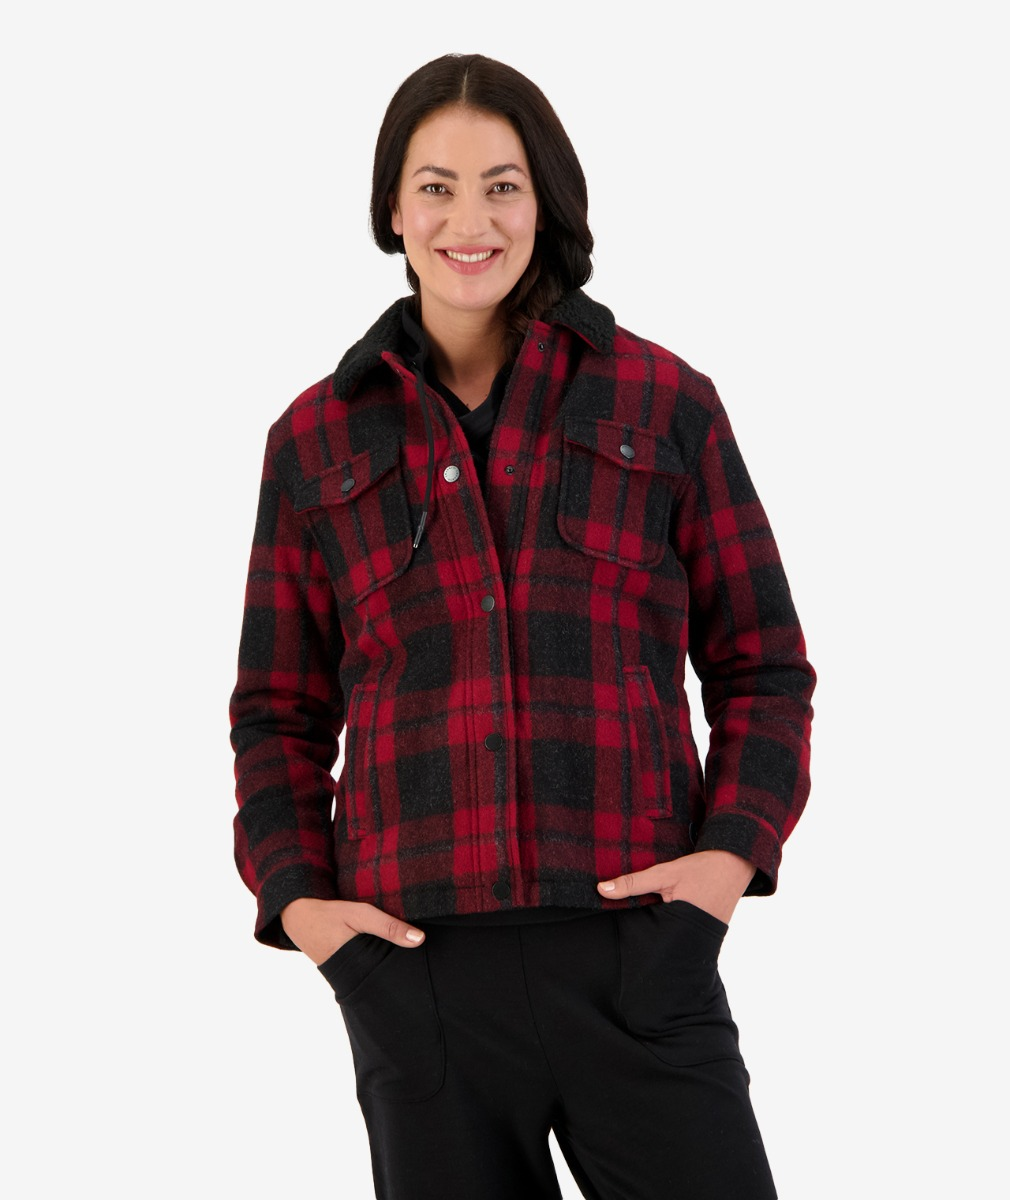 Kaituna Women's Sherpa Lined Jacket in Merlot Check